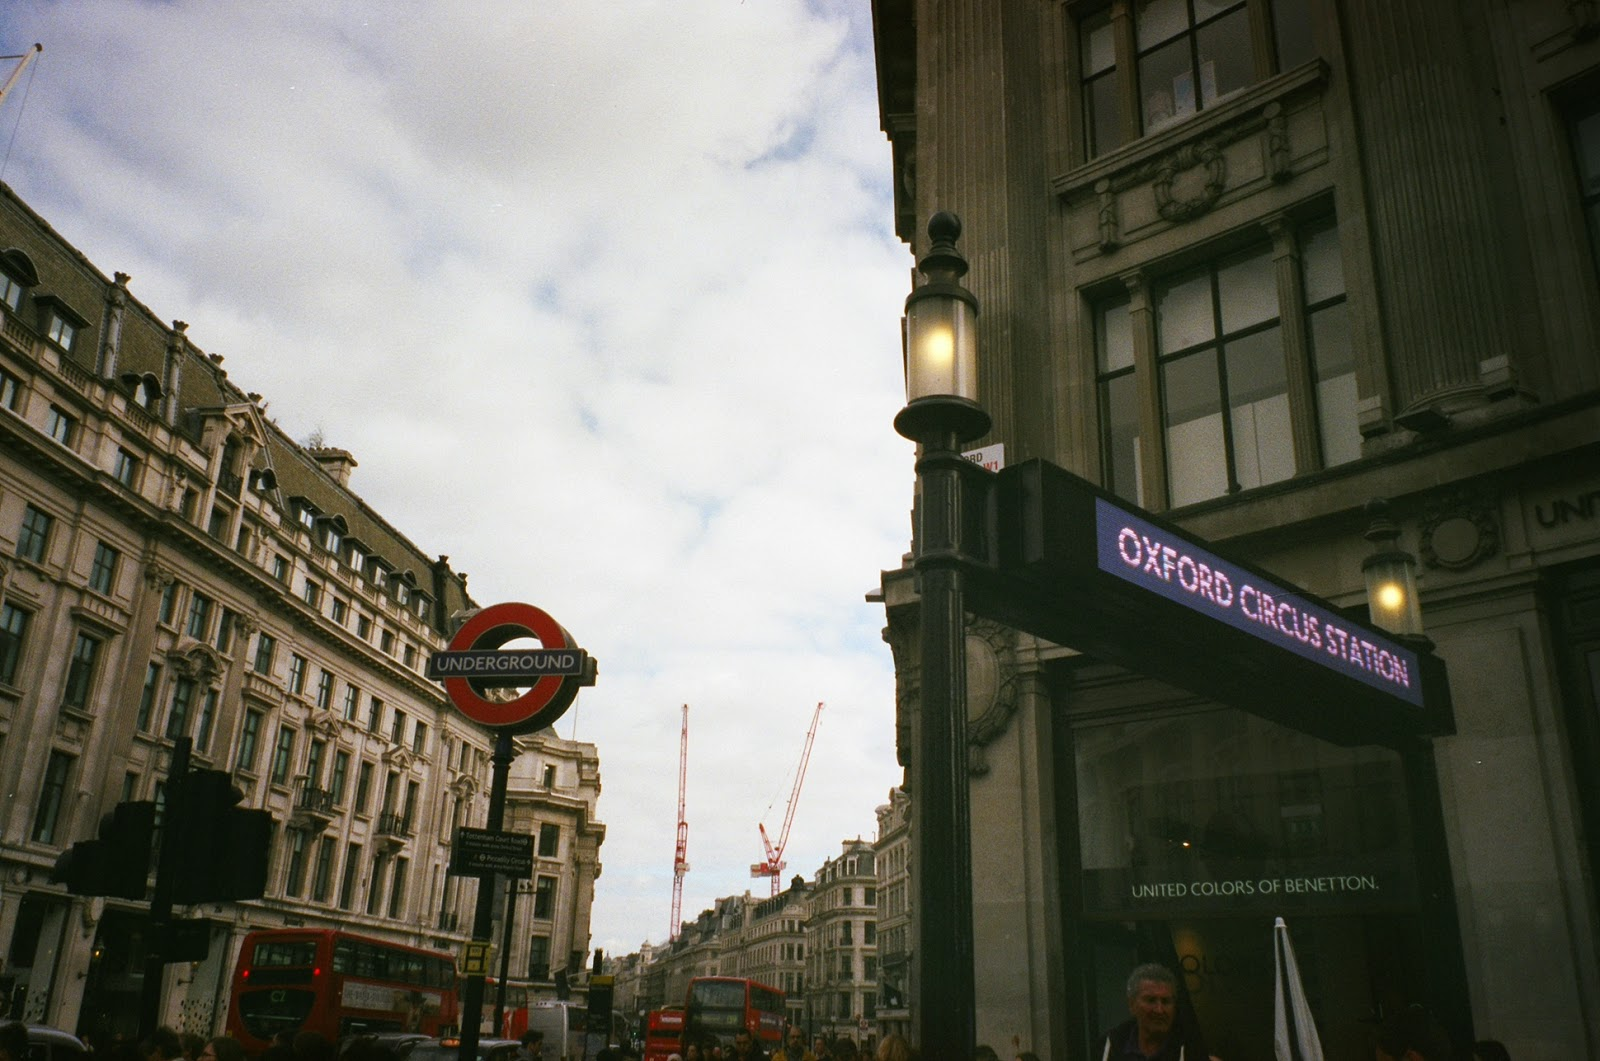 Oxford Circus Station London